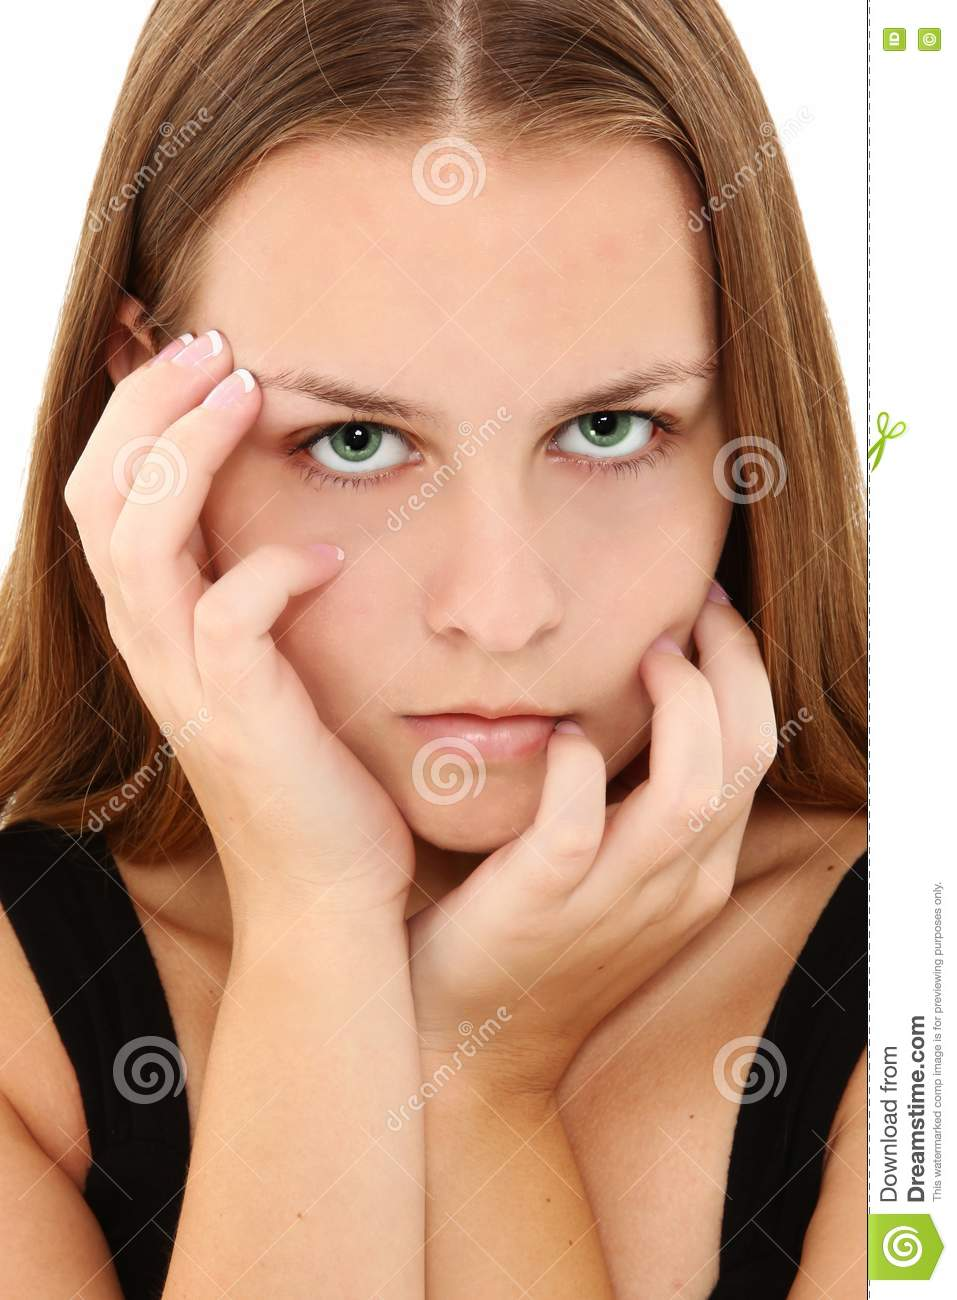 Beautiful 16 Teen Girl Stock Image Image Of Fingers